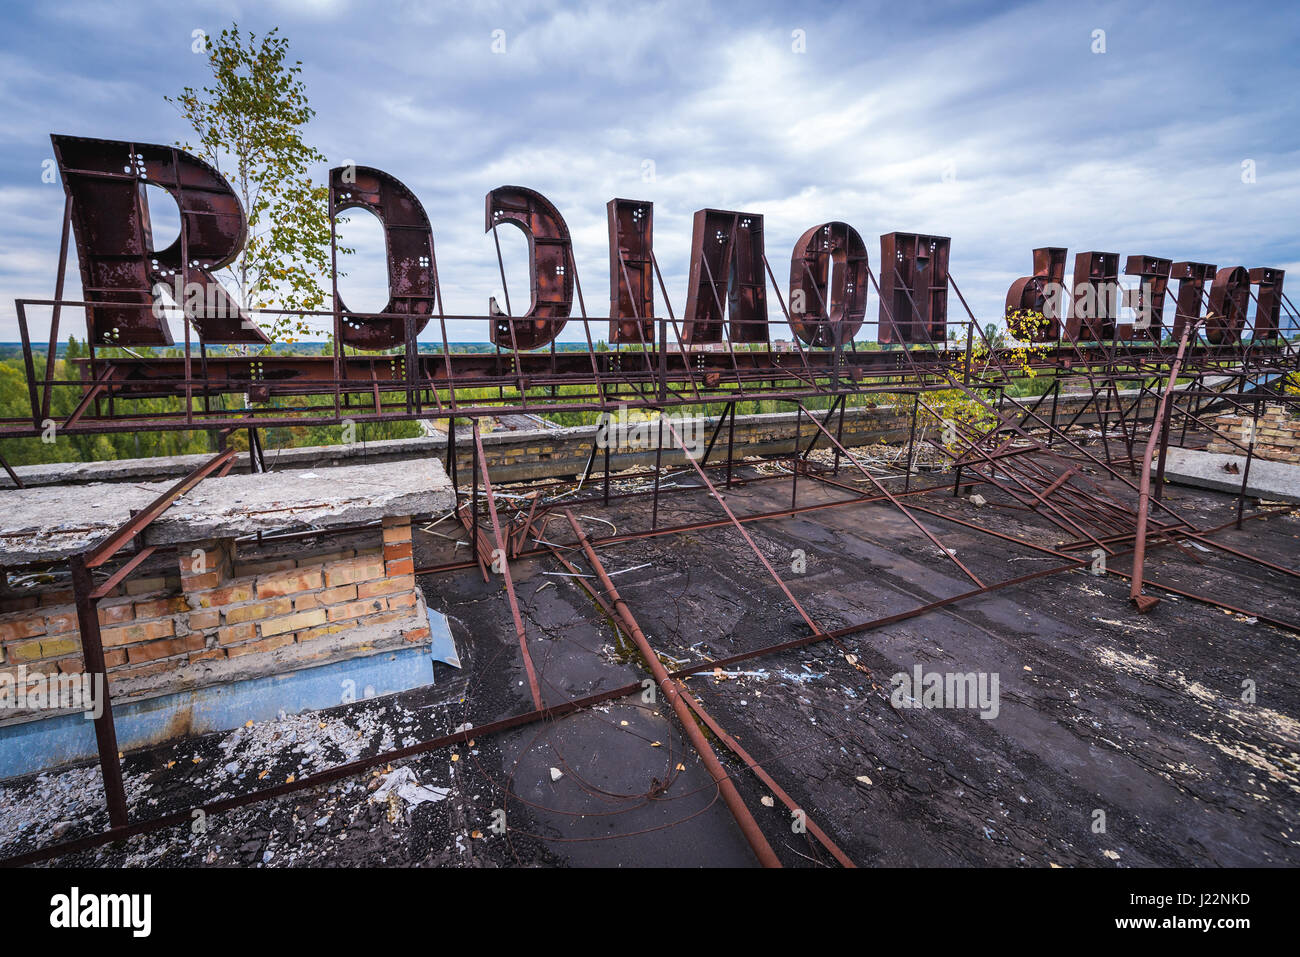 On the roof of Polissya Hotel in Pripyat ghost city of Chernobyl Nuclear Power Plant Zone of Alienation around nuclear - Stock Image